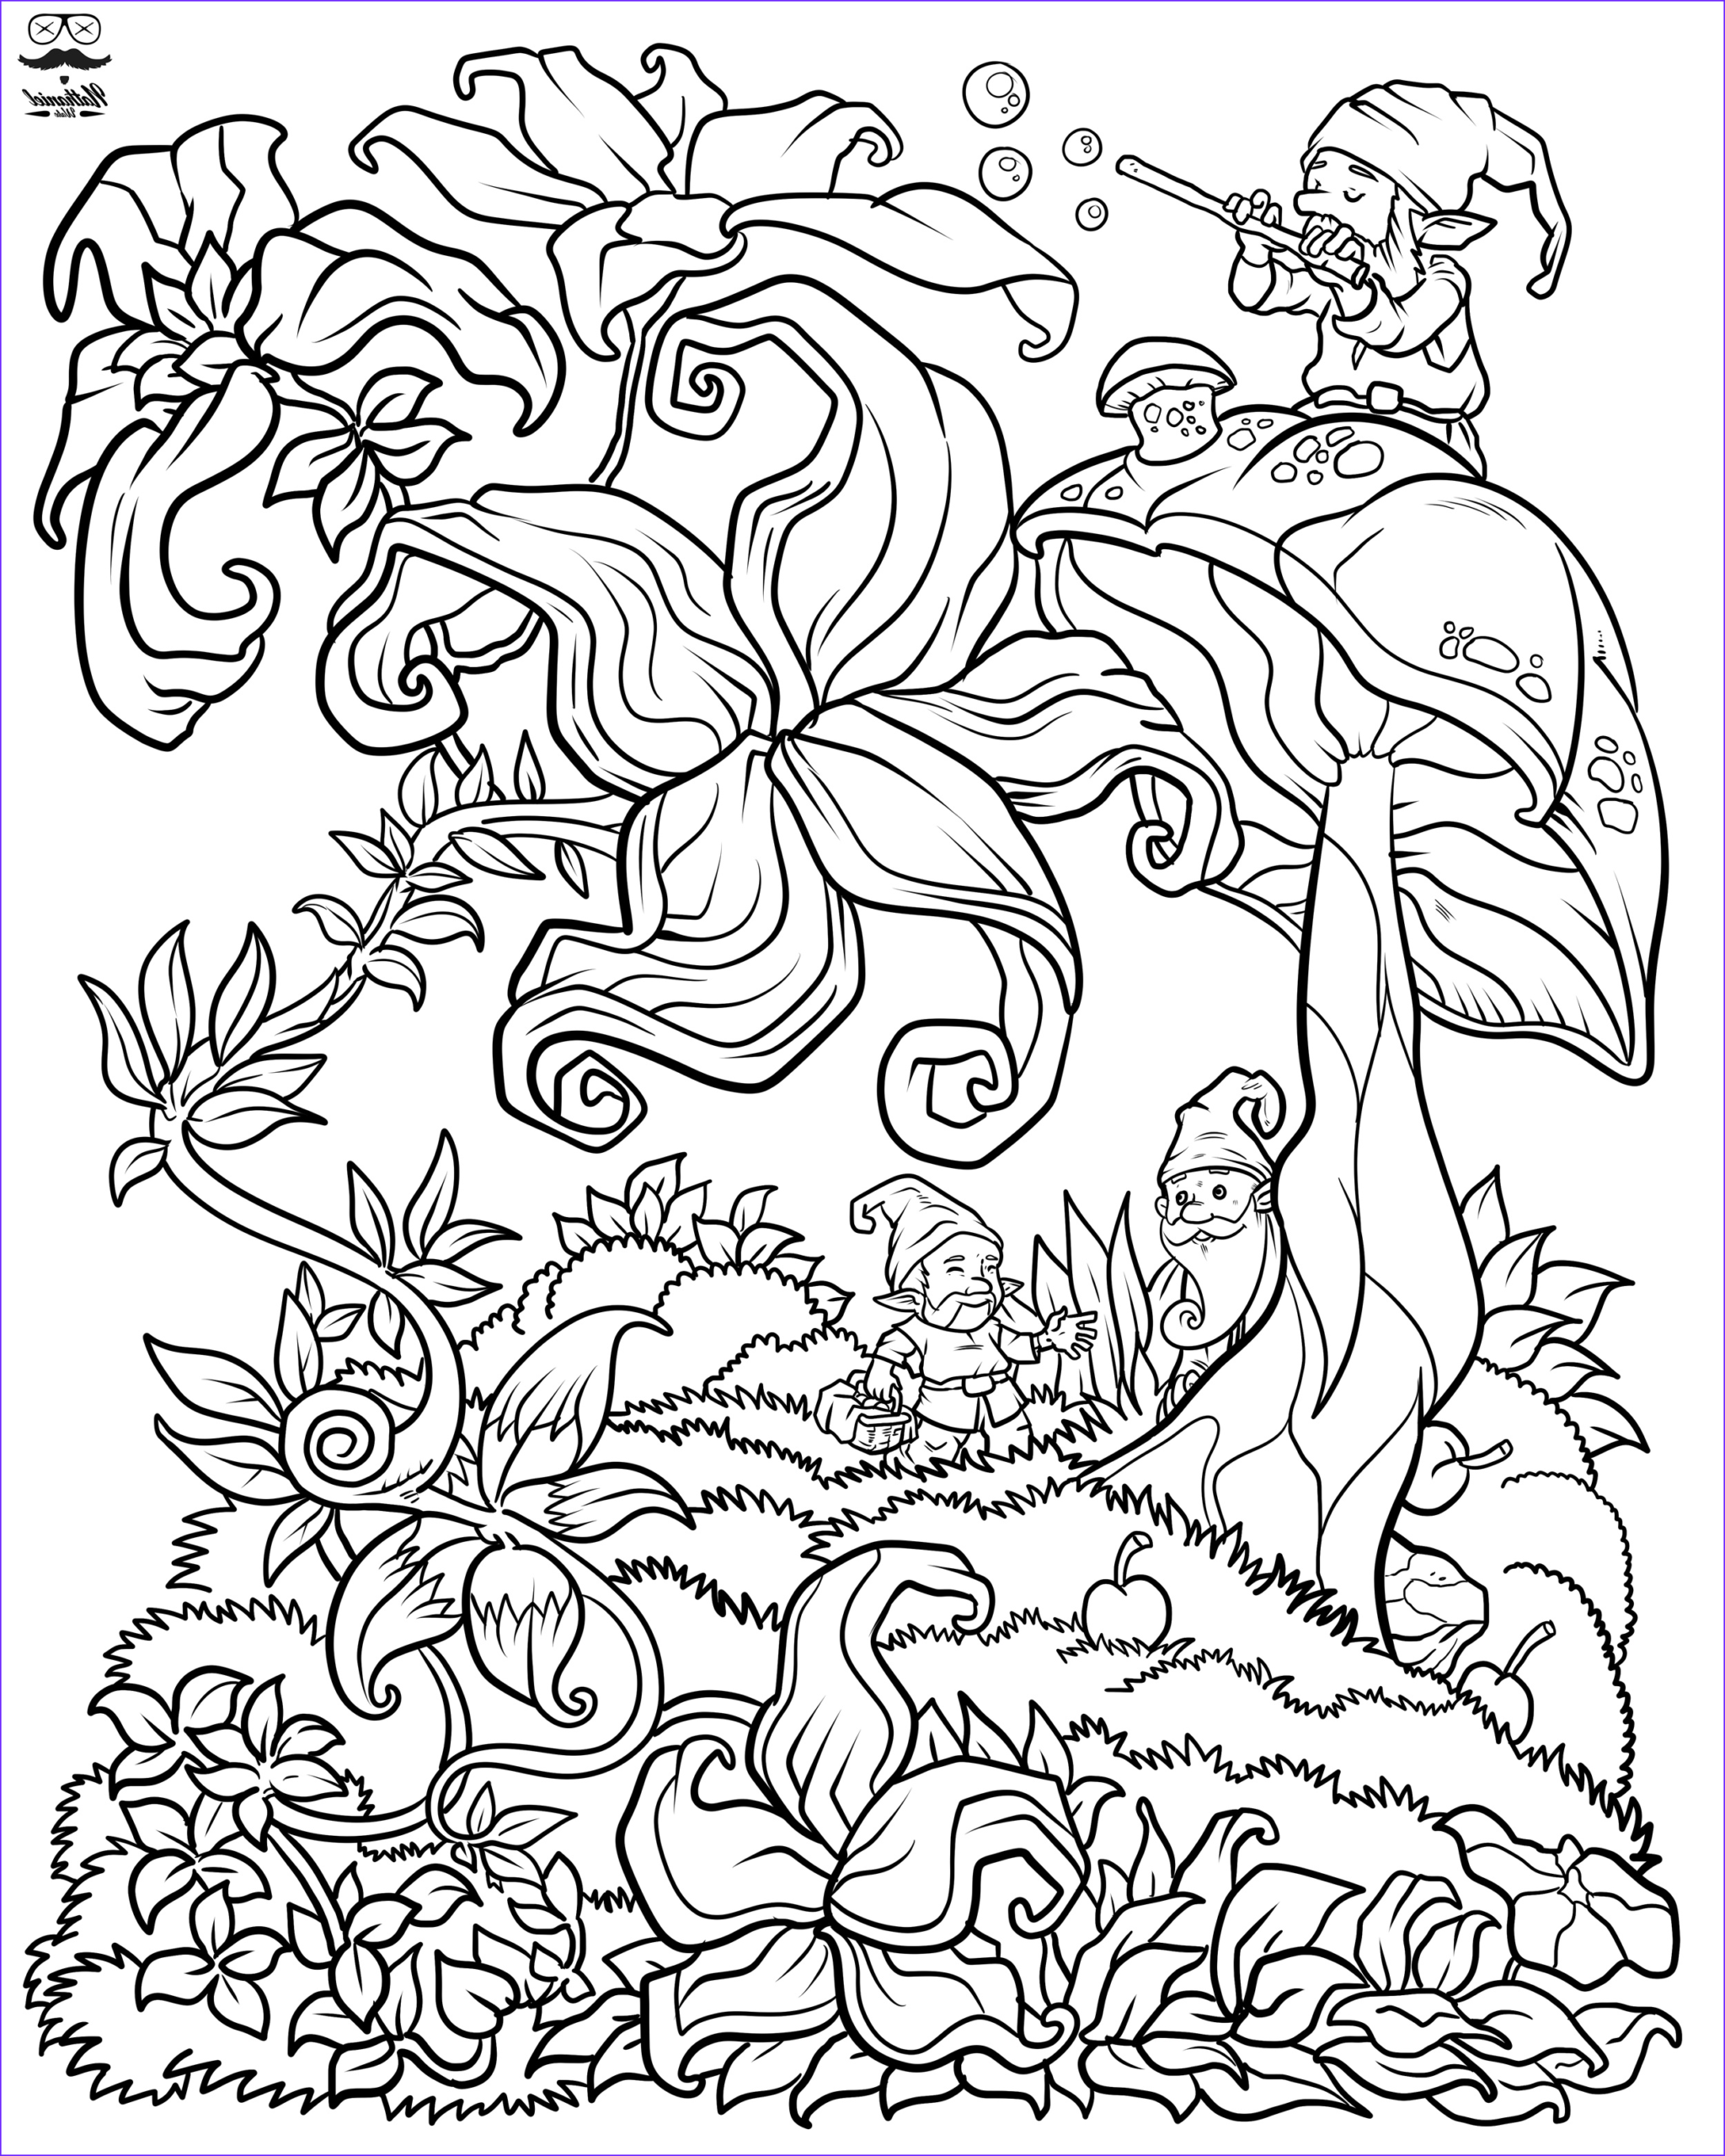 Coloring Images for Adults New Image Floral Fantasy Digital Version Adult Coloring Book